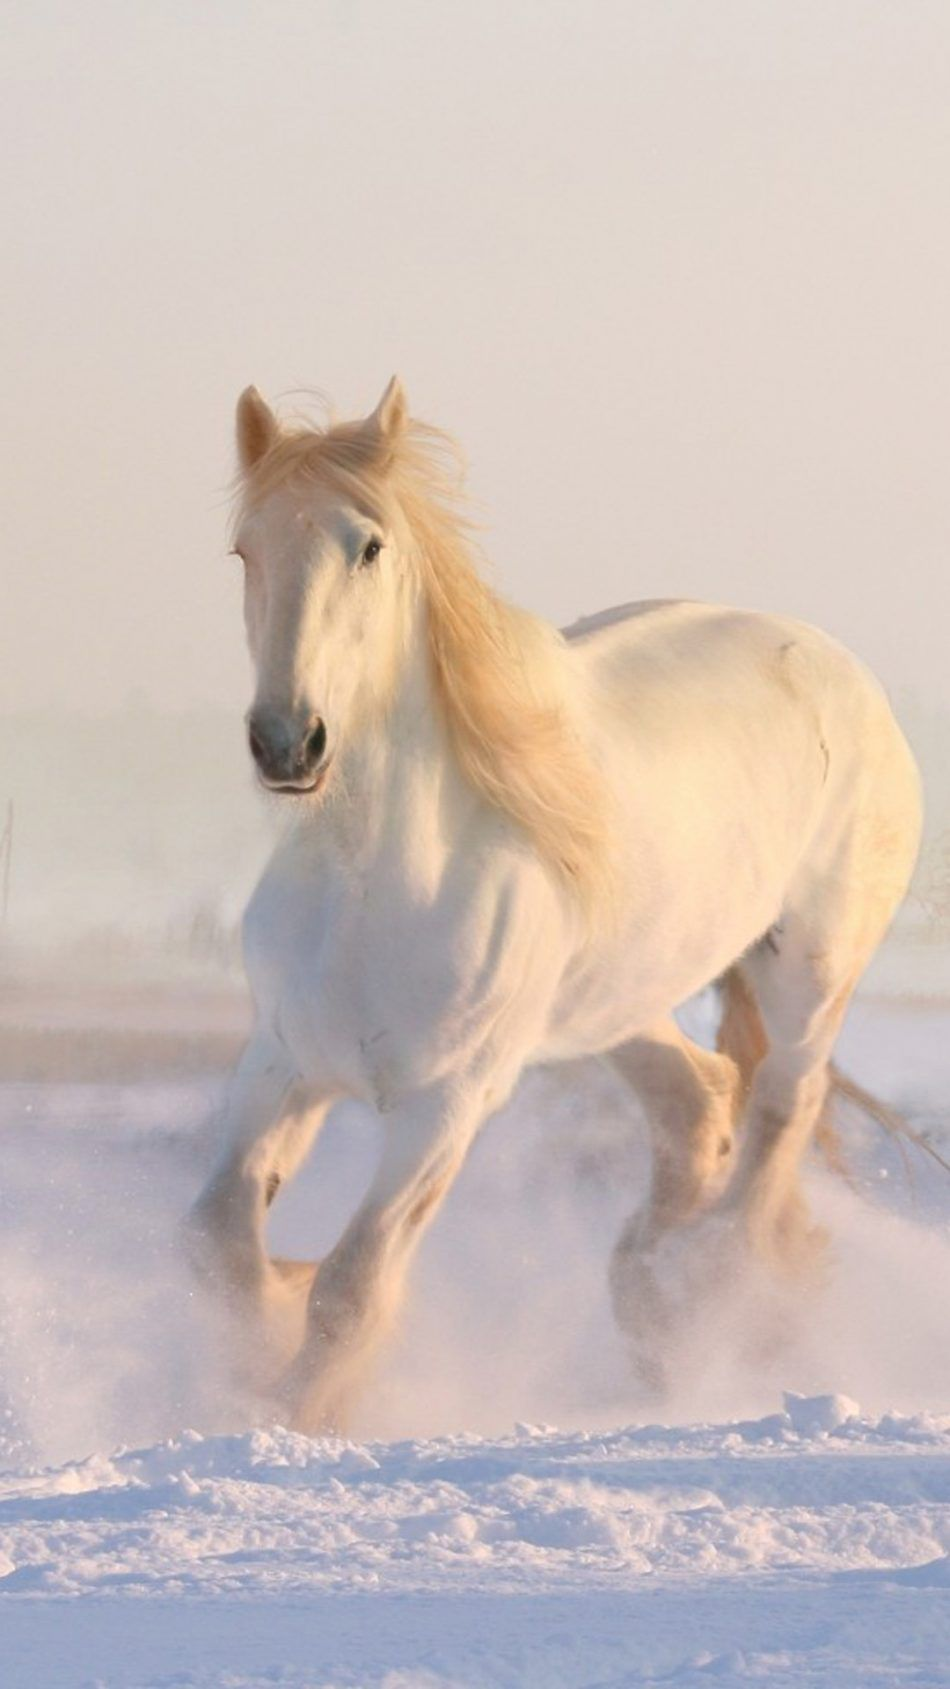 White Horse Running Winter Snow Hd Mobile Wallpaper Horses Beautiful Horses White Horse